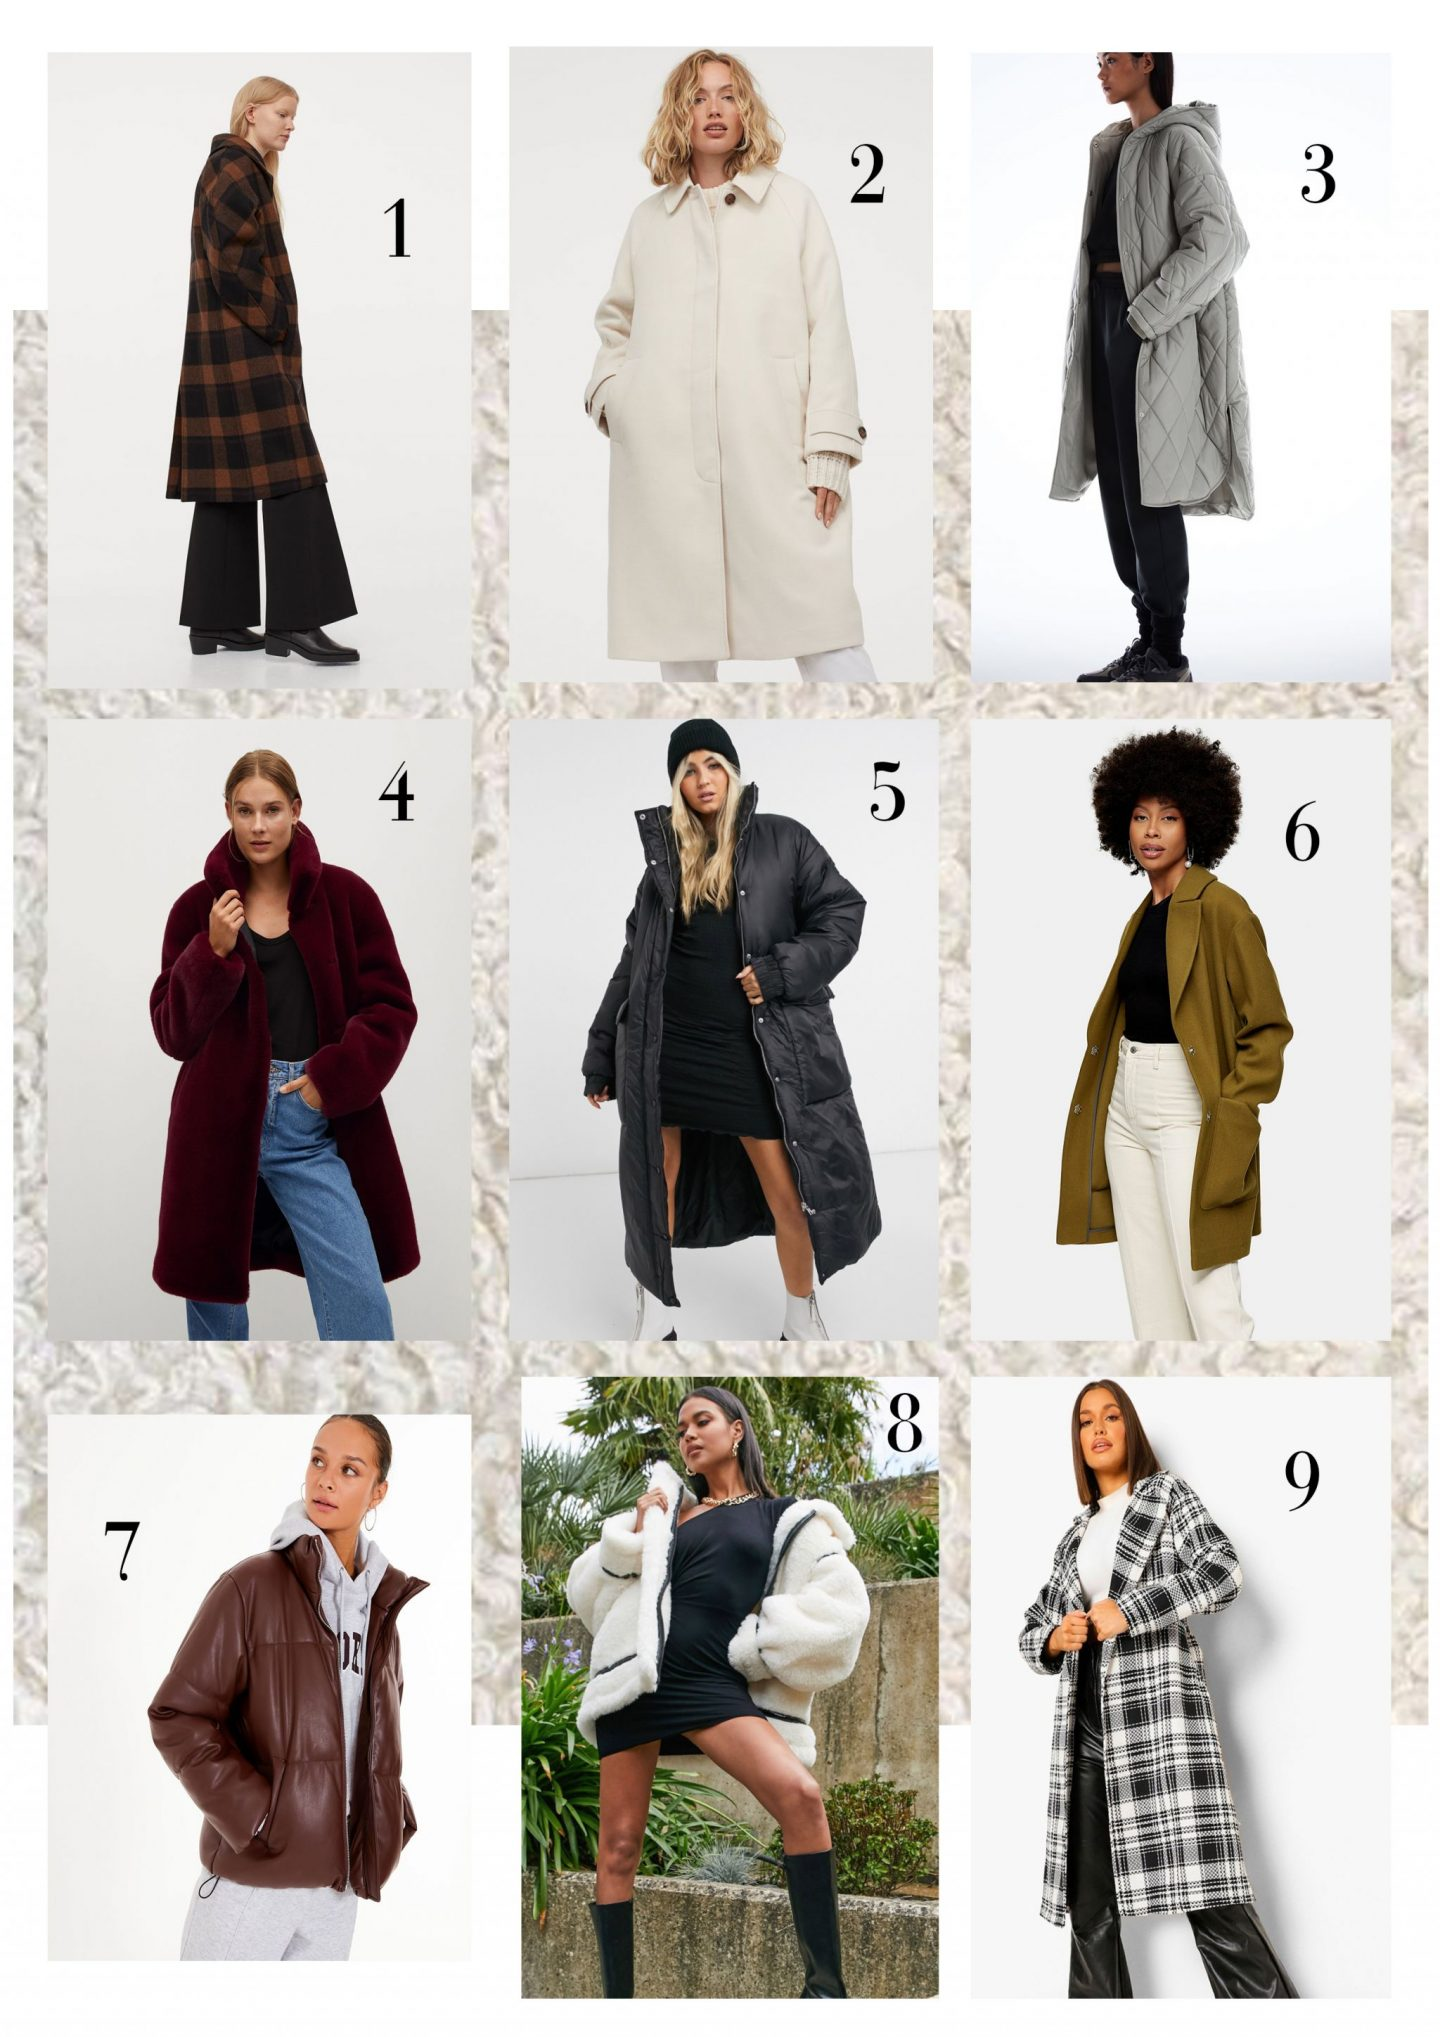 I like to think winter coats are my forte so here are some that will keep you warm this winter...